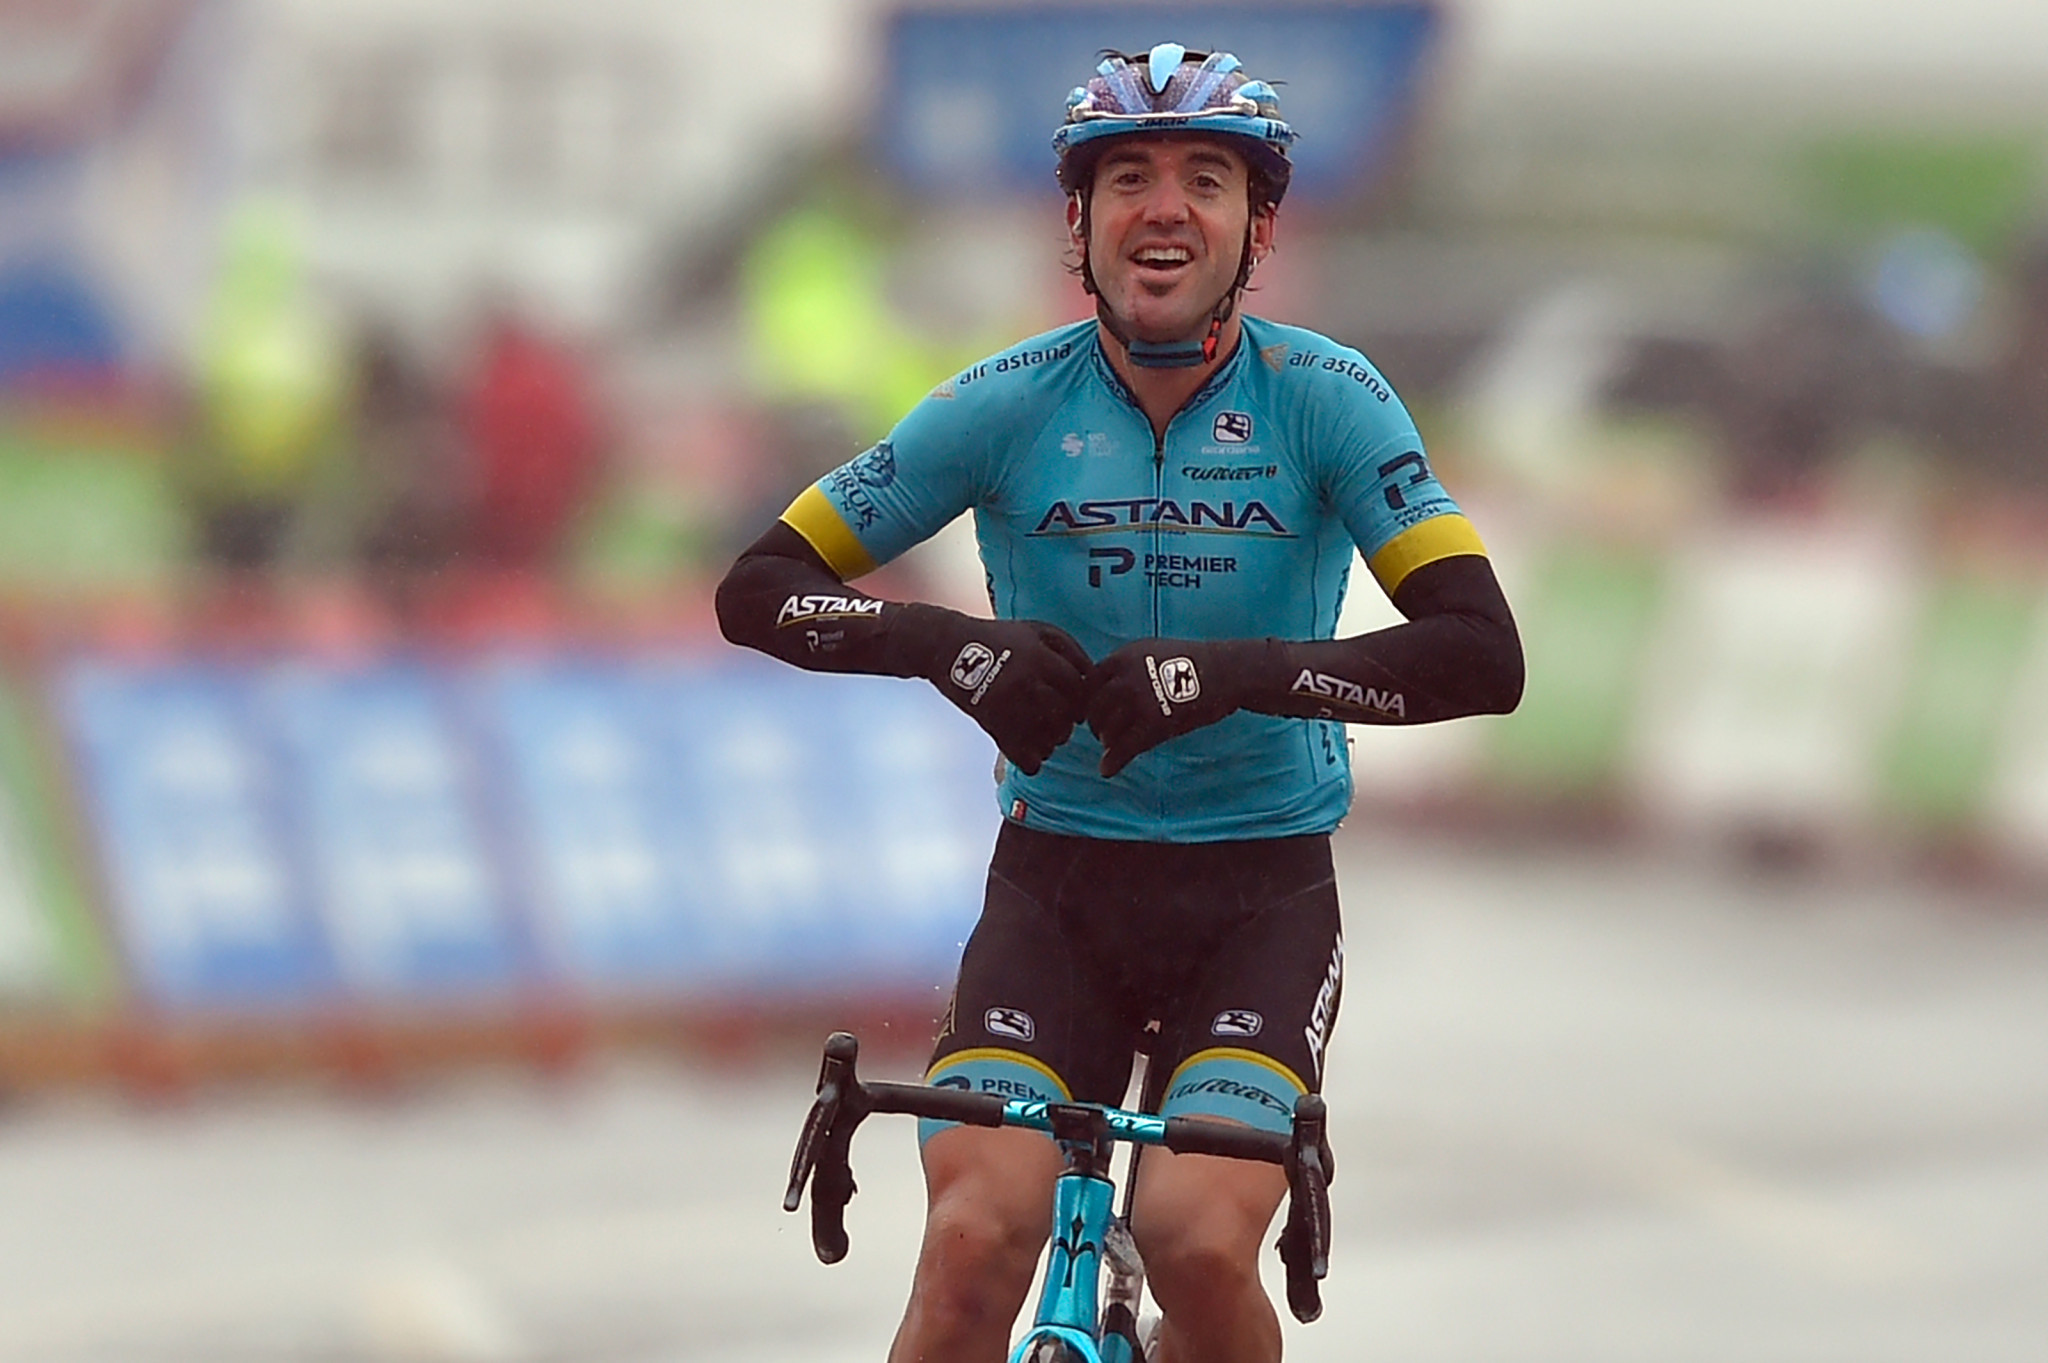 McNulty takes Tour of Basque Country race lead as Izagirre wins stage four